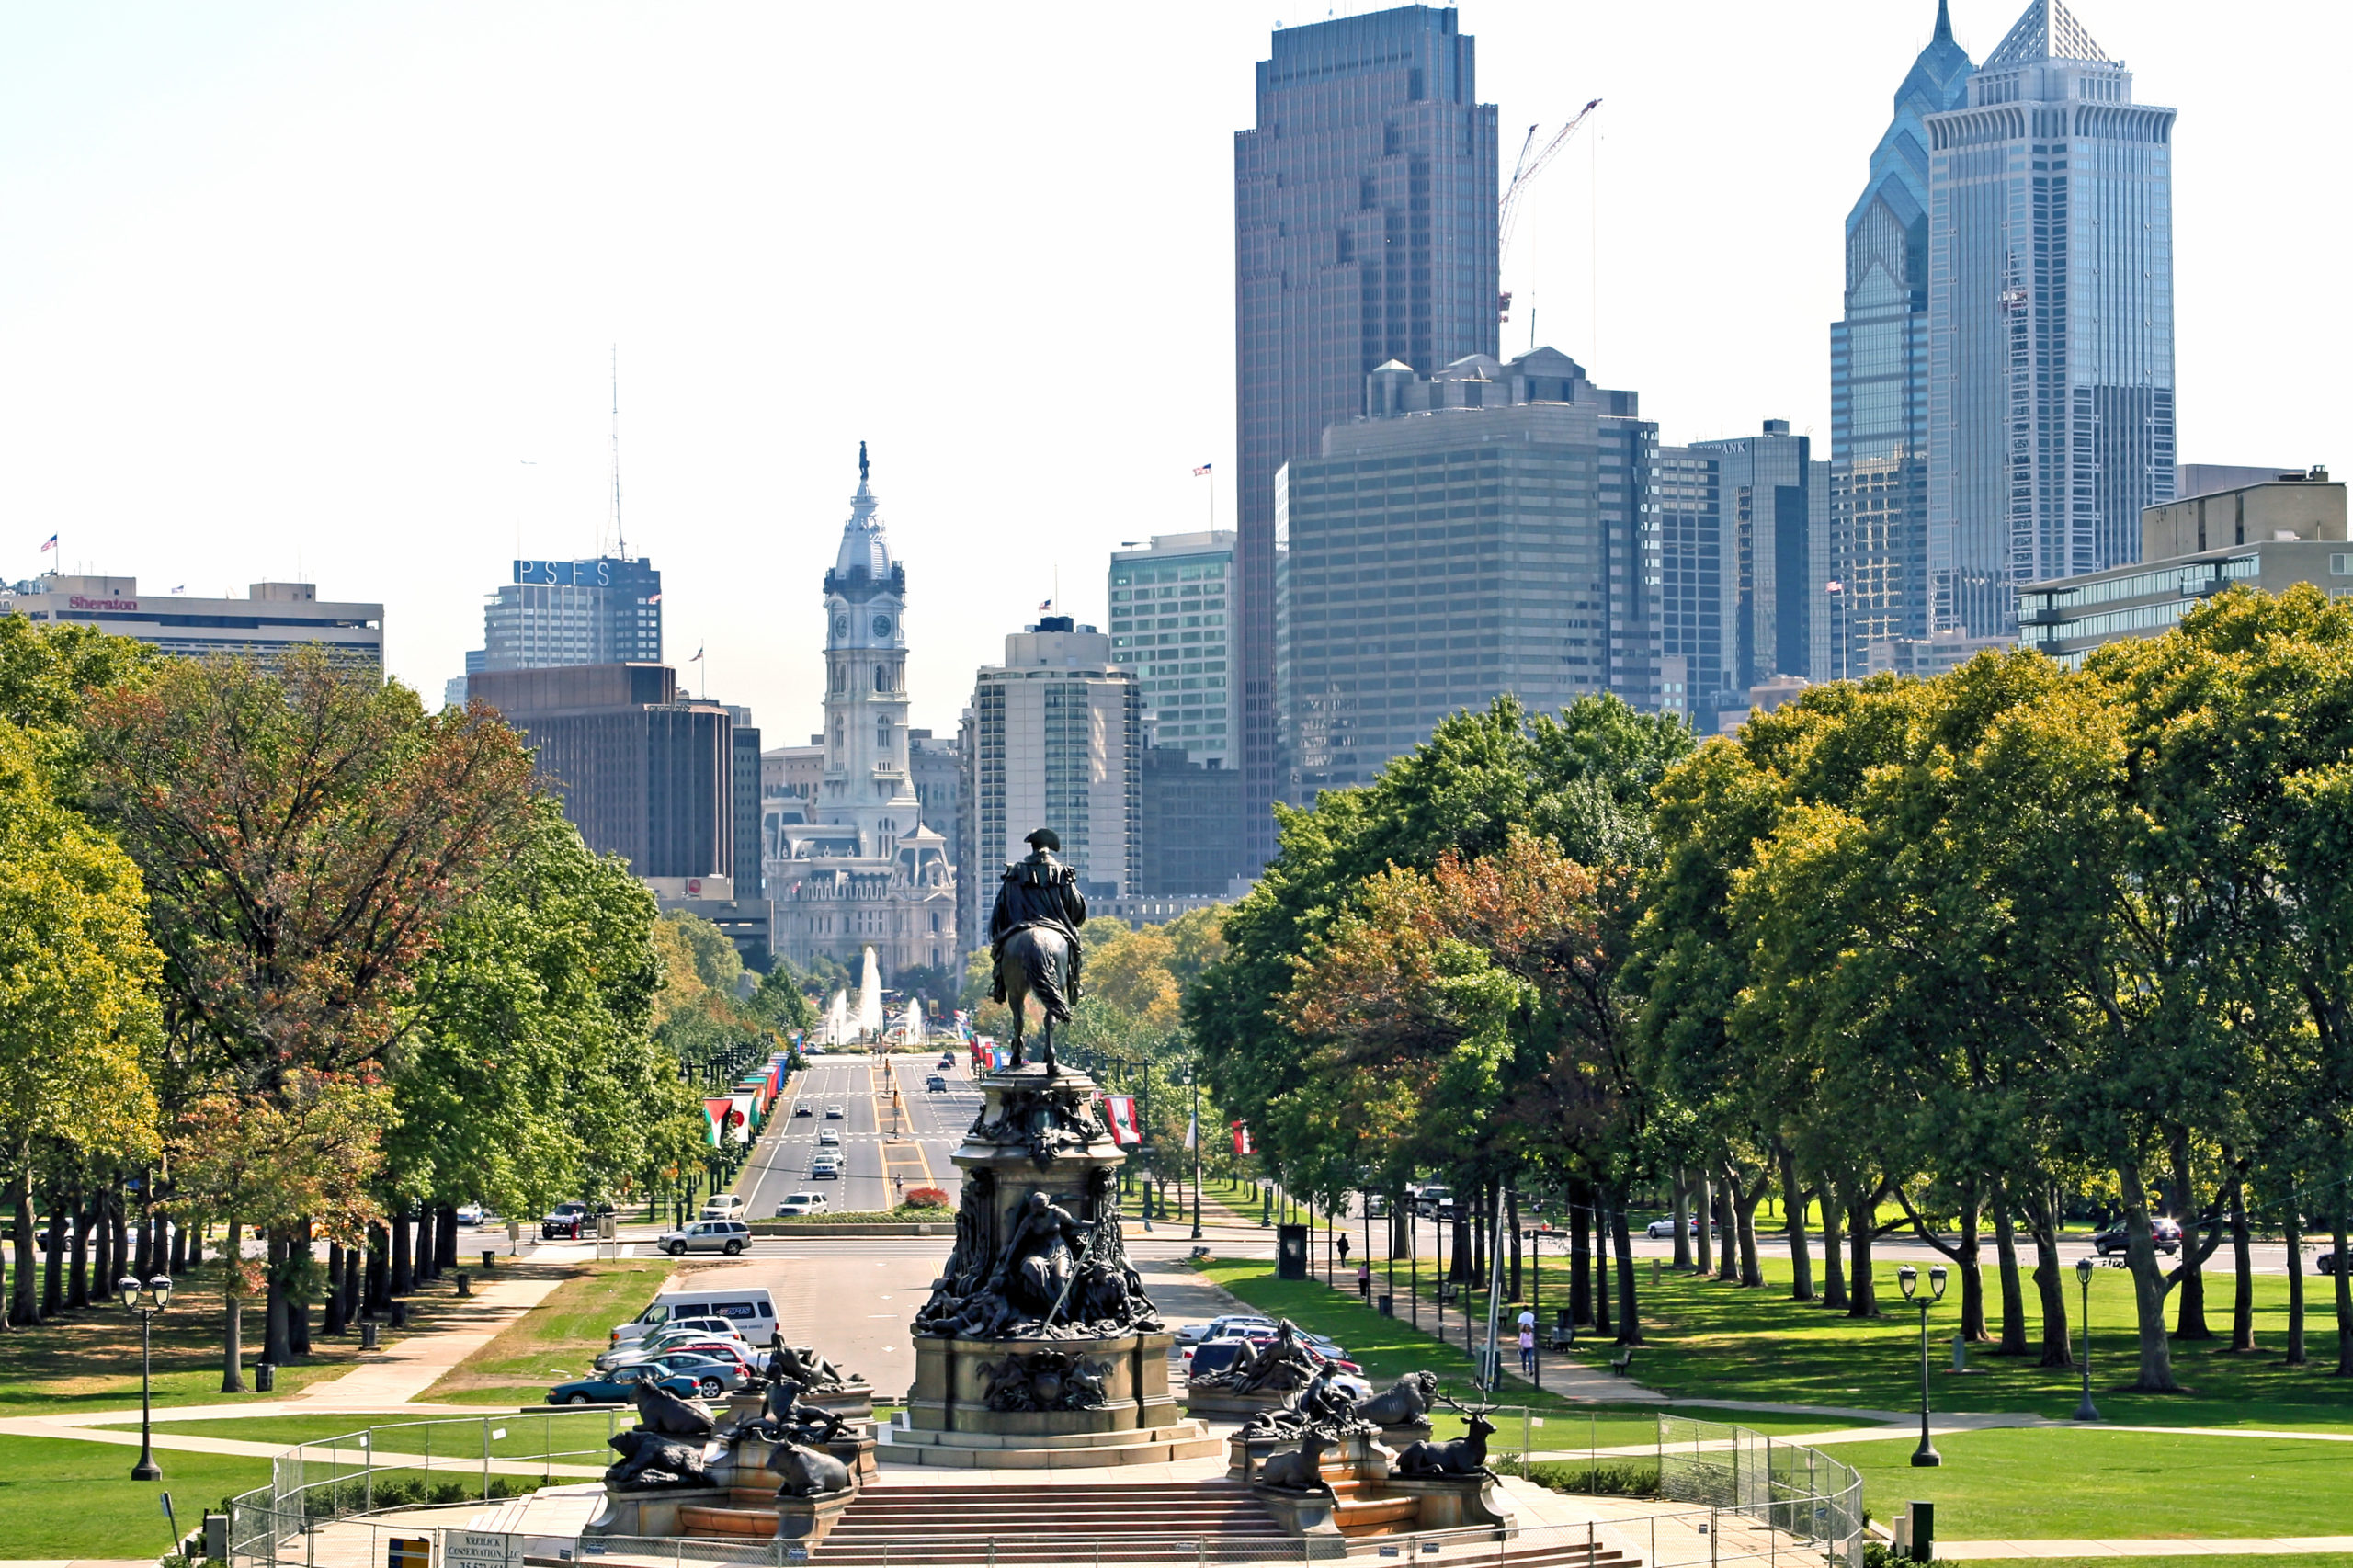 Weekend Getaway - Philadelphia